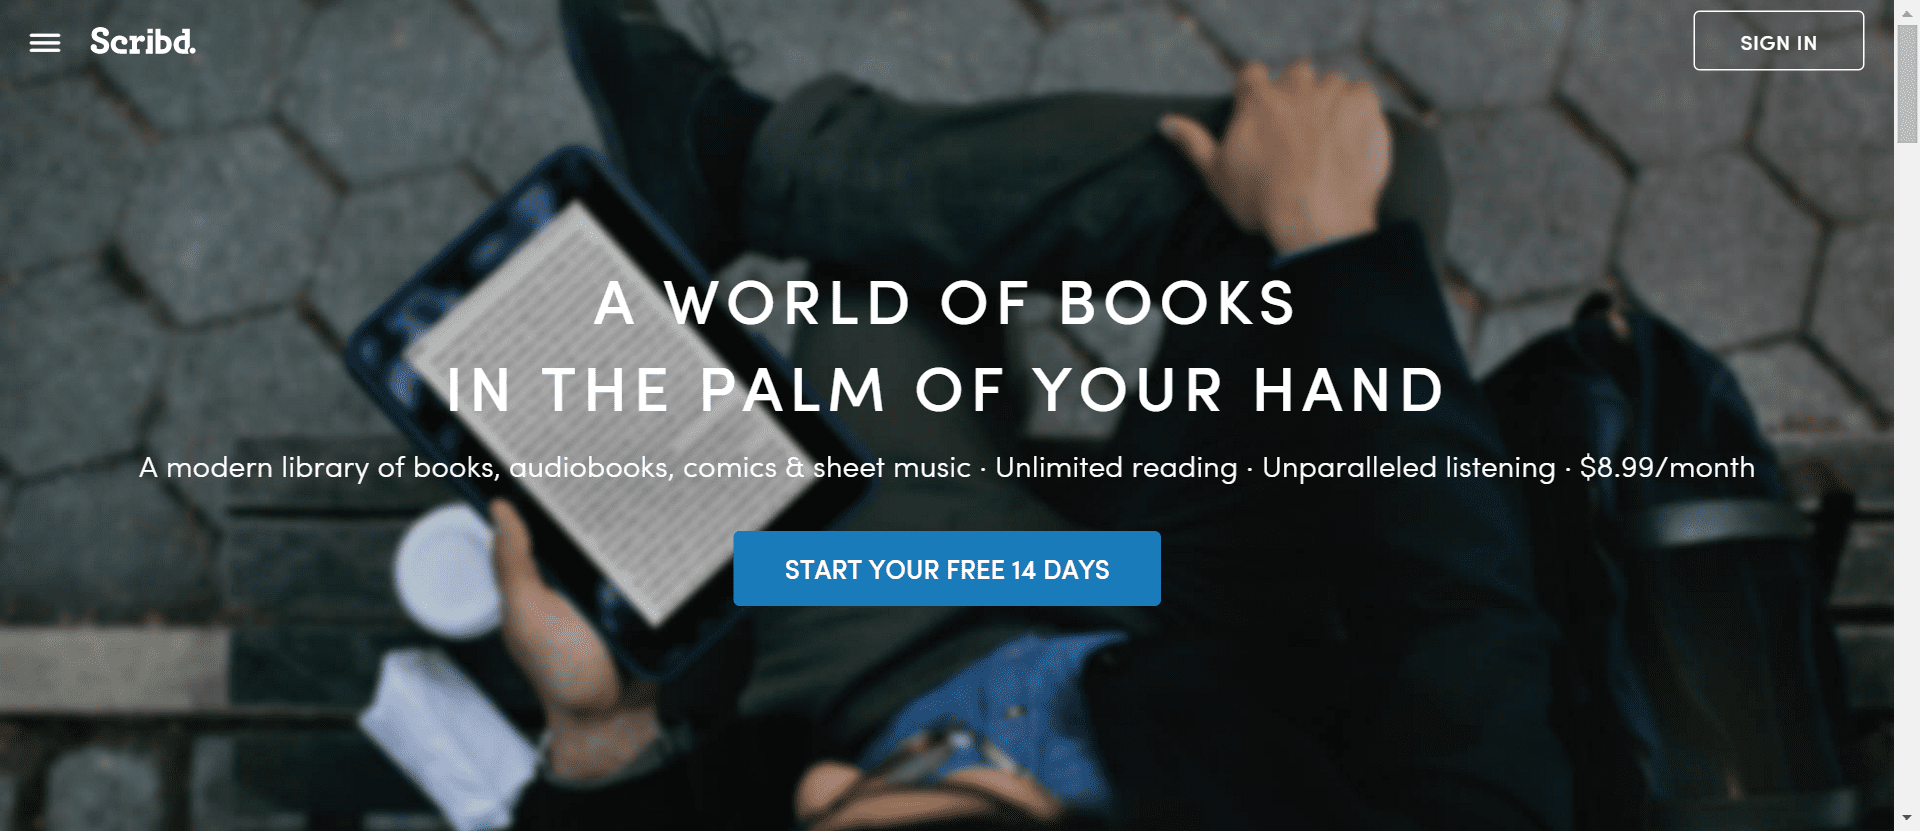 20 Best Sites to Download Free Books in 2019